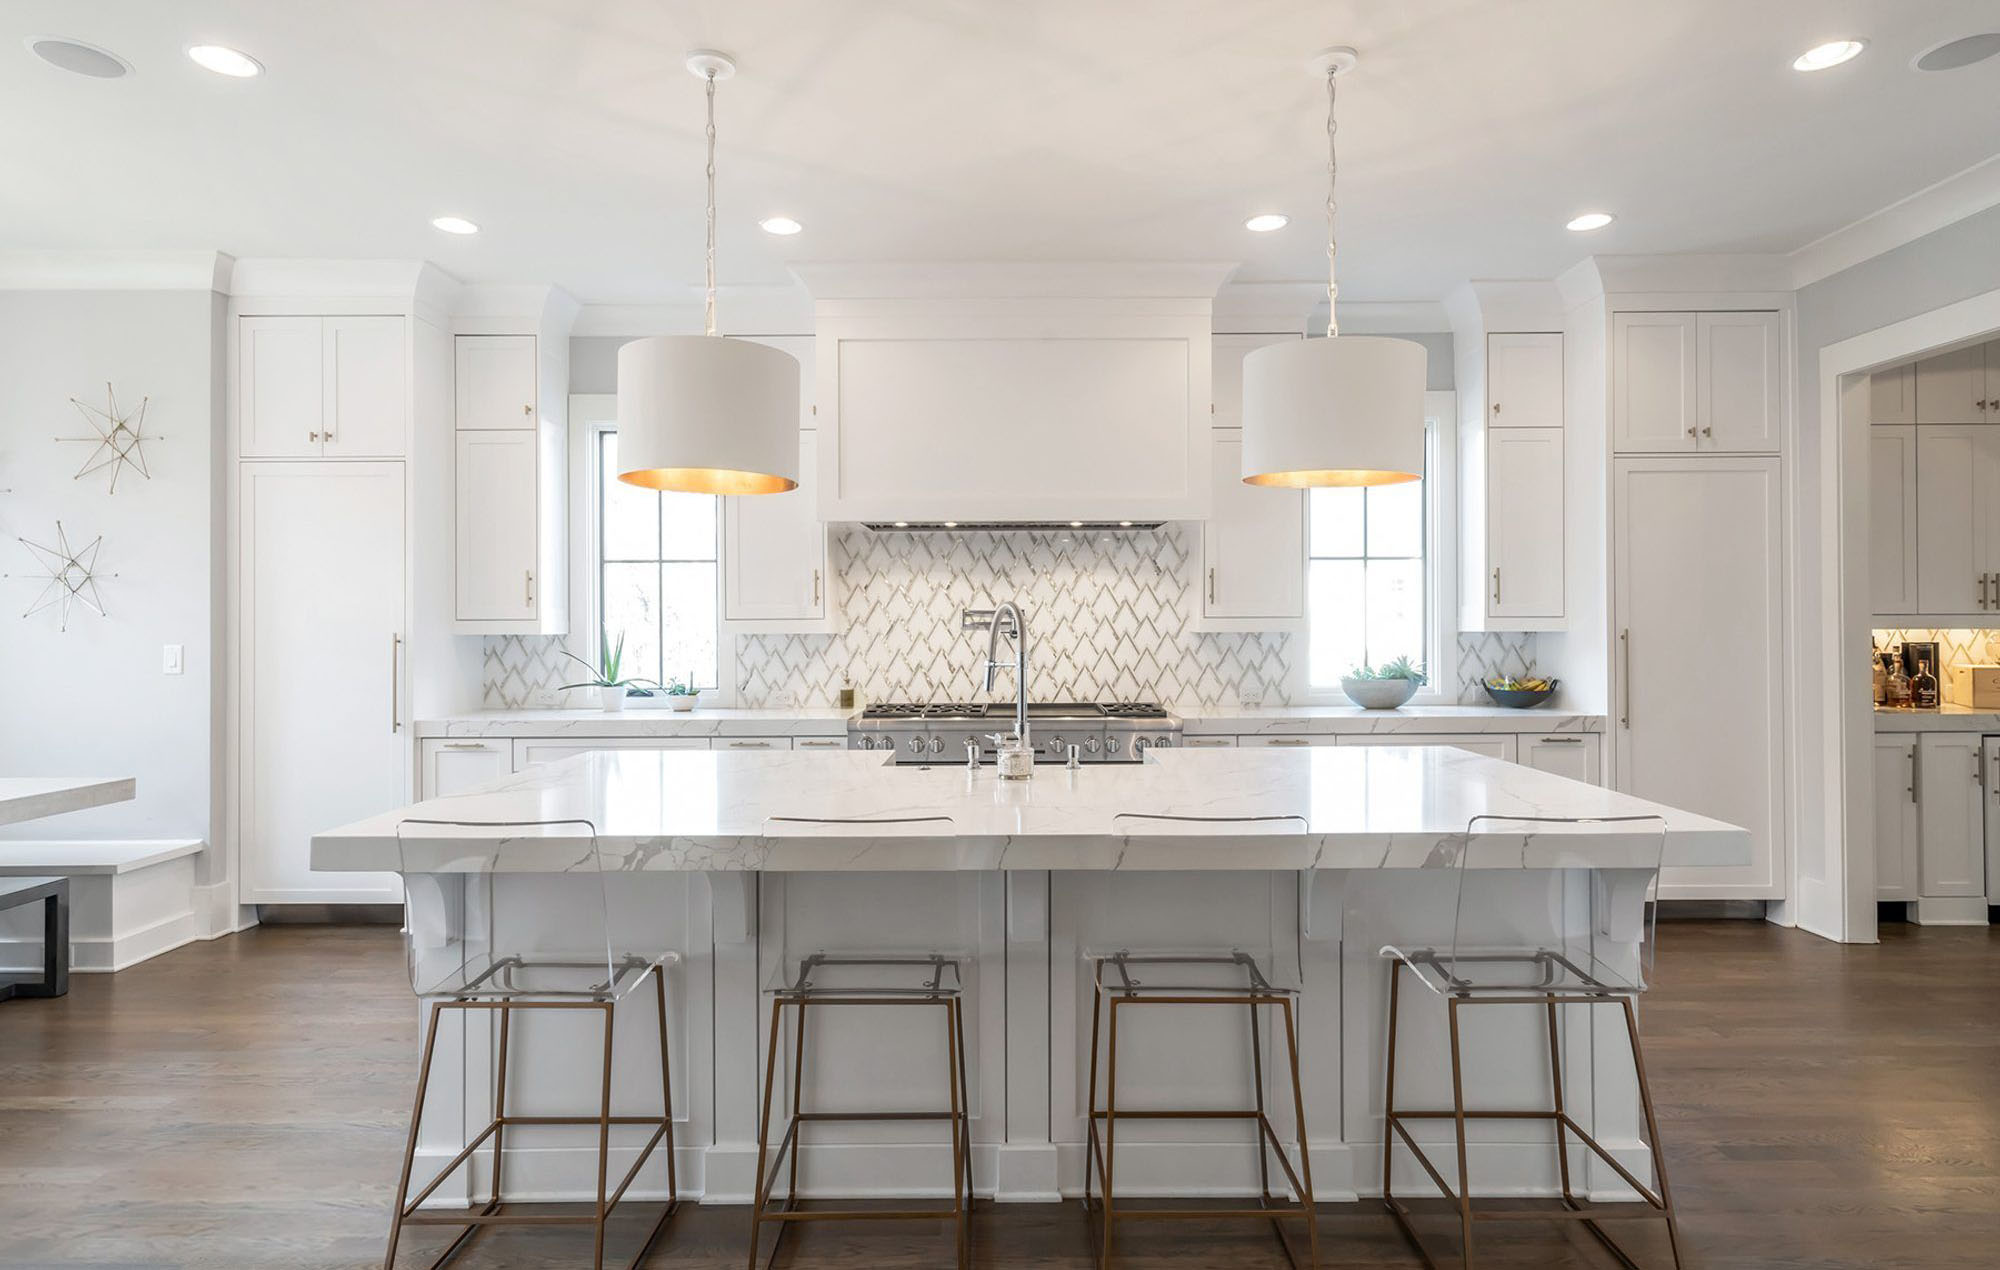 White shaker style kitchen cabinets with marble quartz countertops, brown hardwood floors and glass stools.